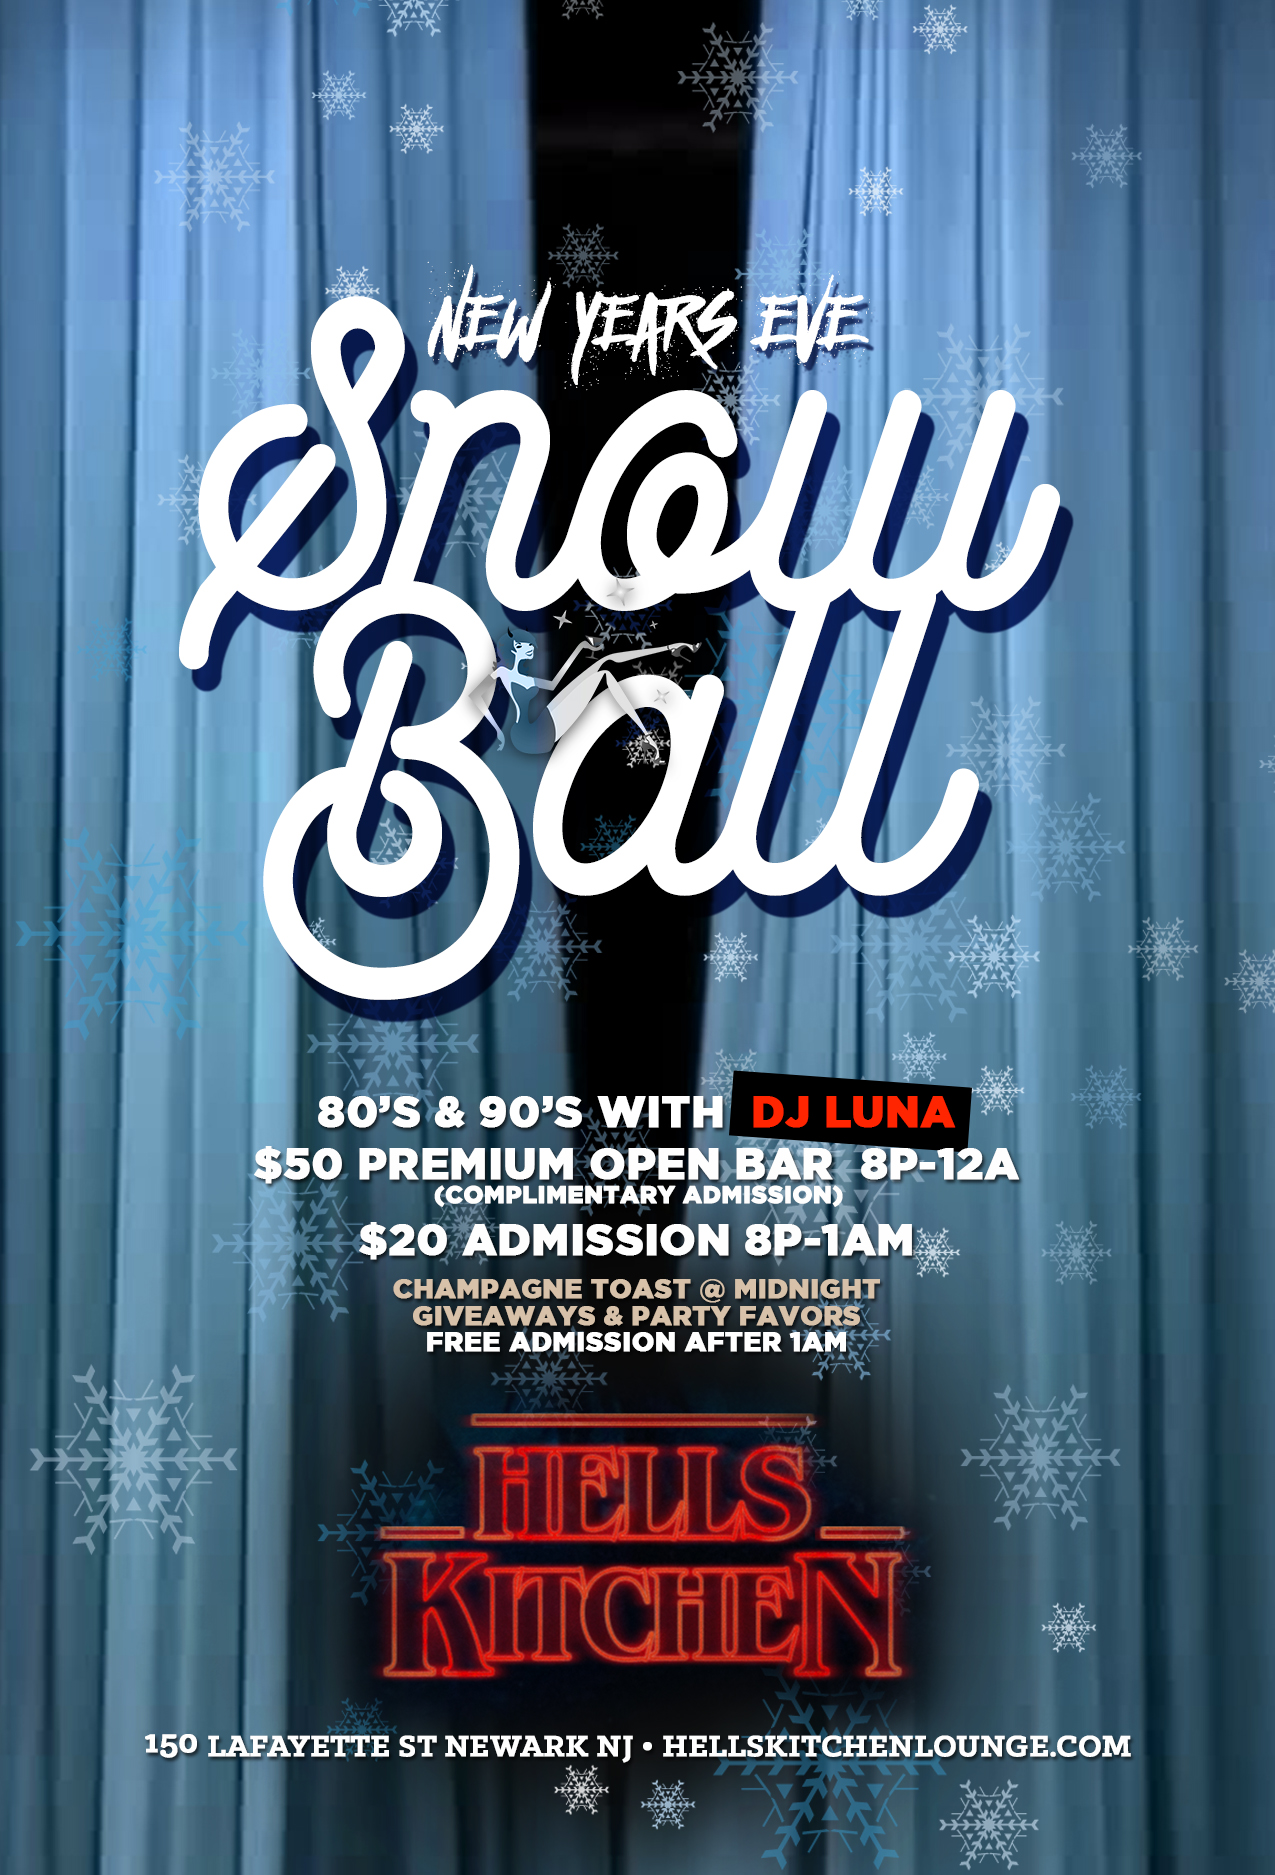 Snow Ball - HKL NYE in Newark New Year's Eve